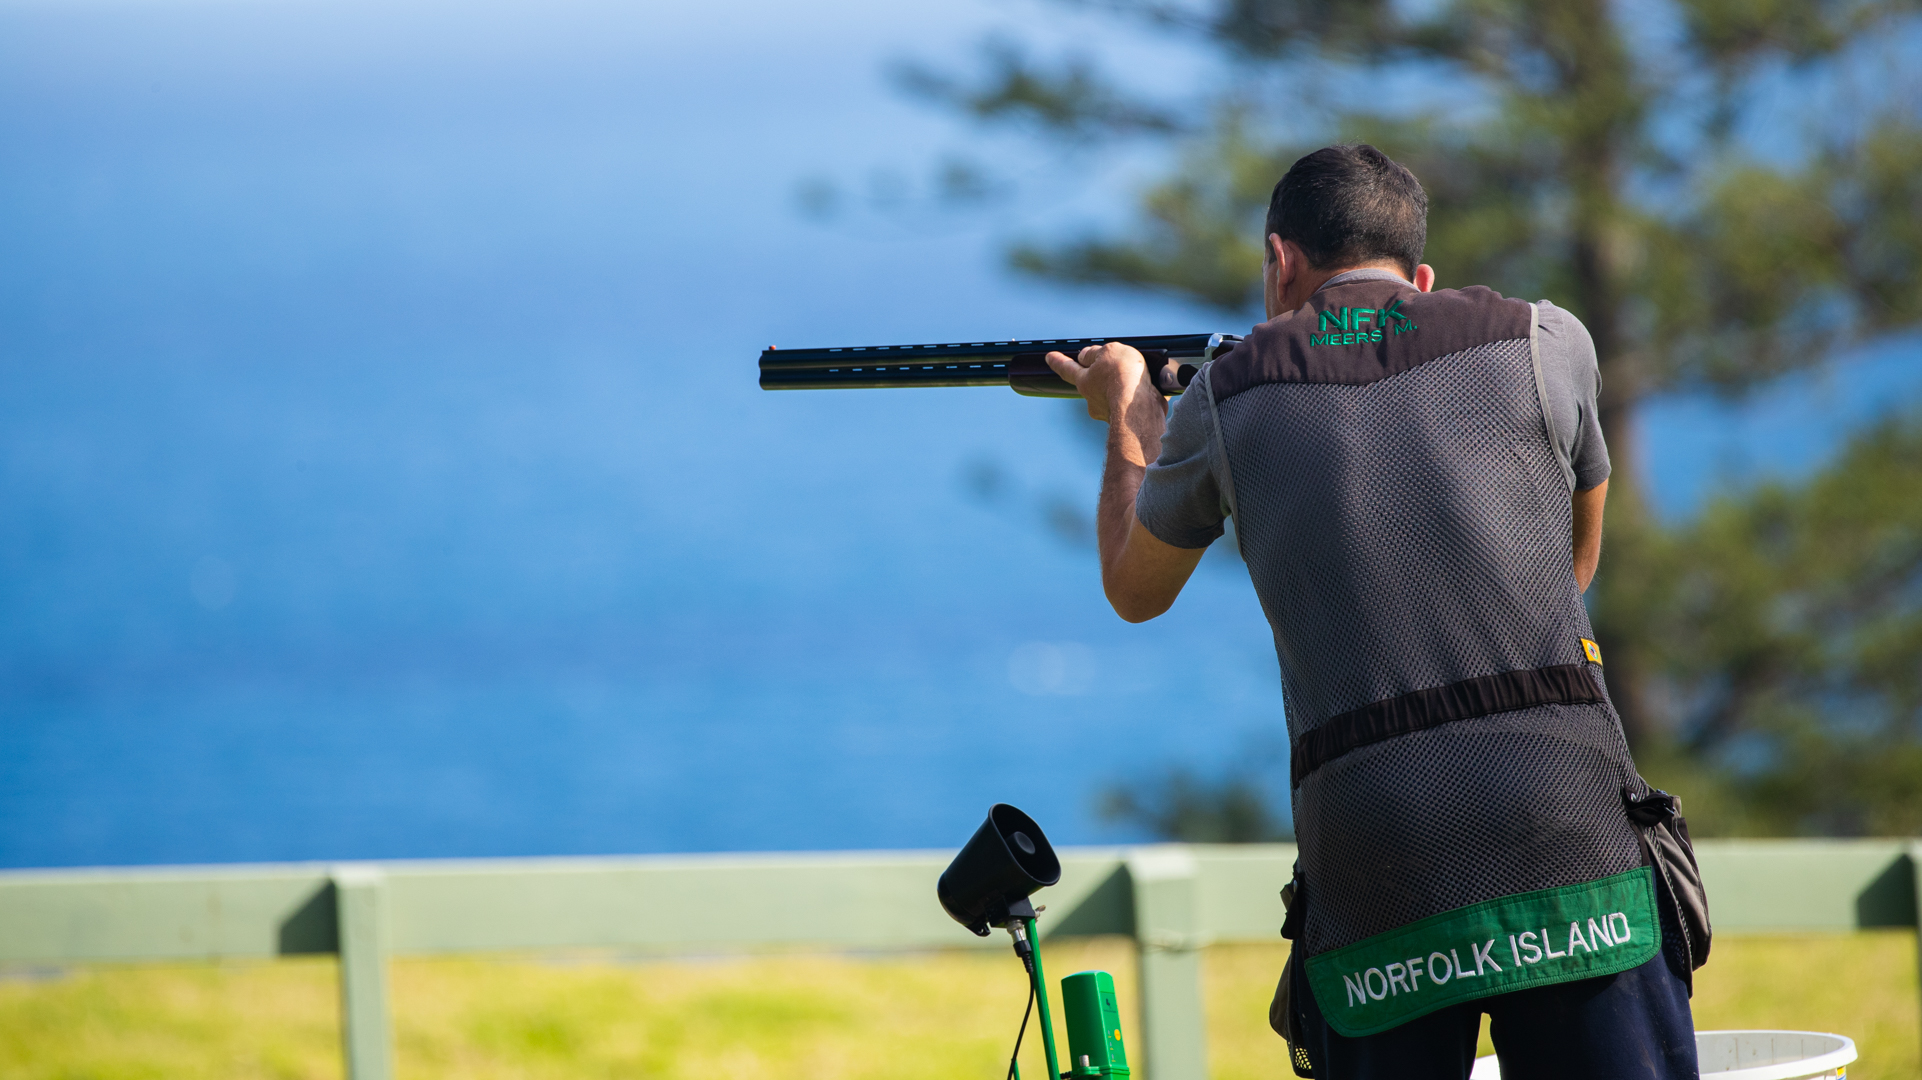 Back view of a man pointing a long double-barelled gun. He is wearing a dark coloured vest with green trim. The words Norfolk Island are printed in white.